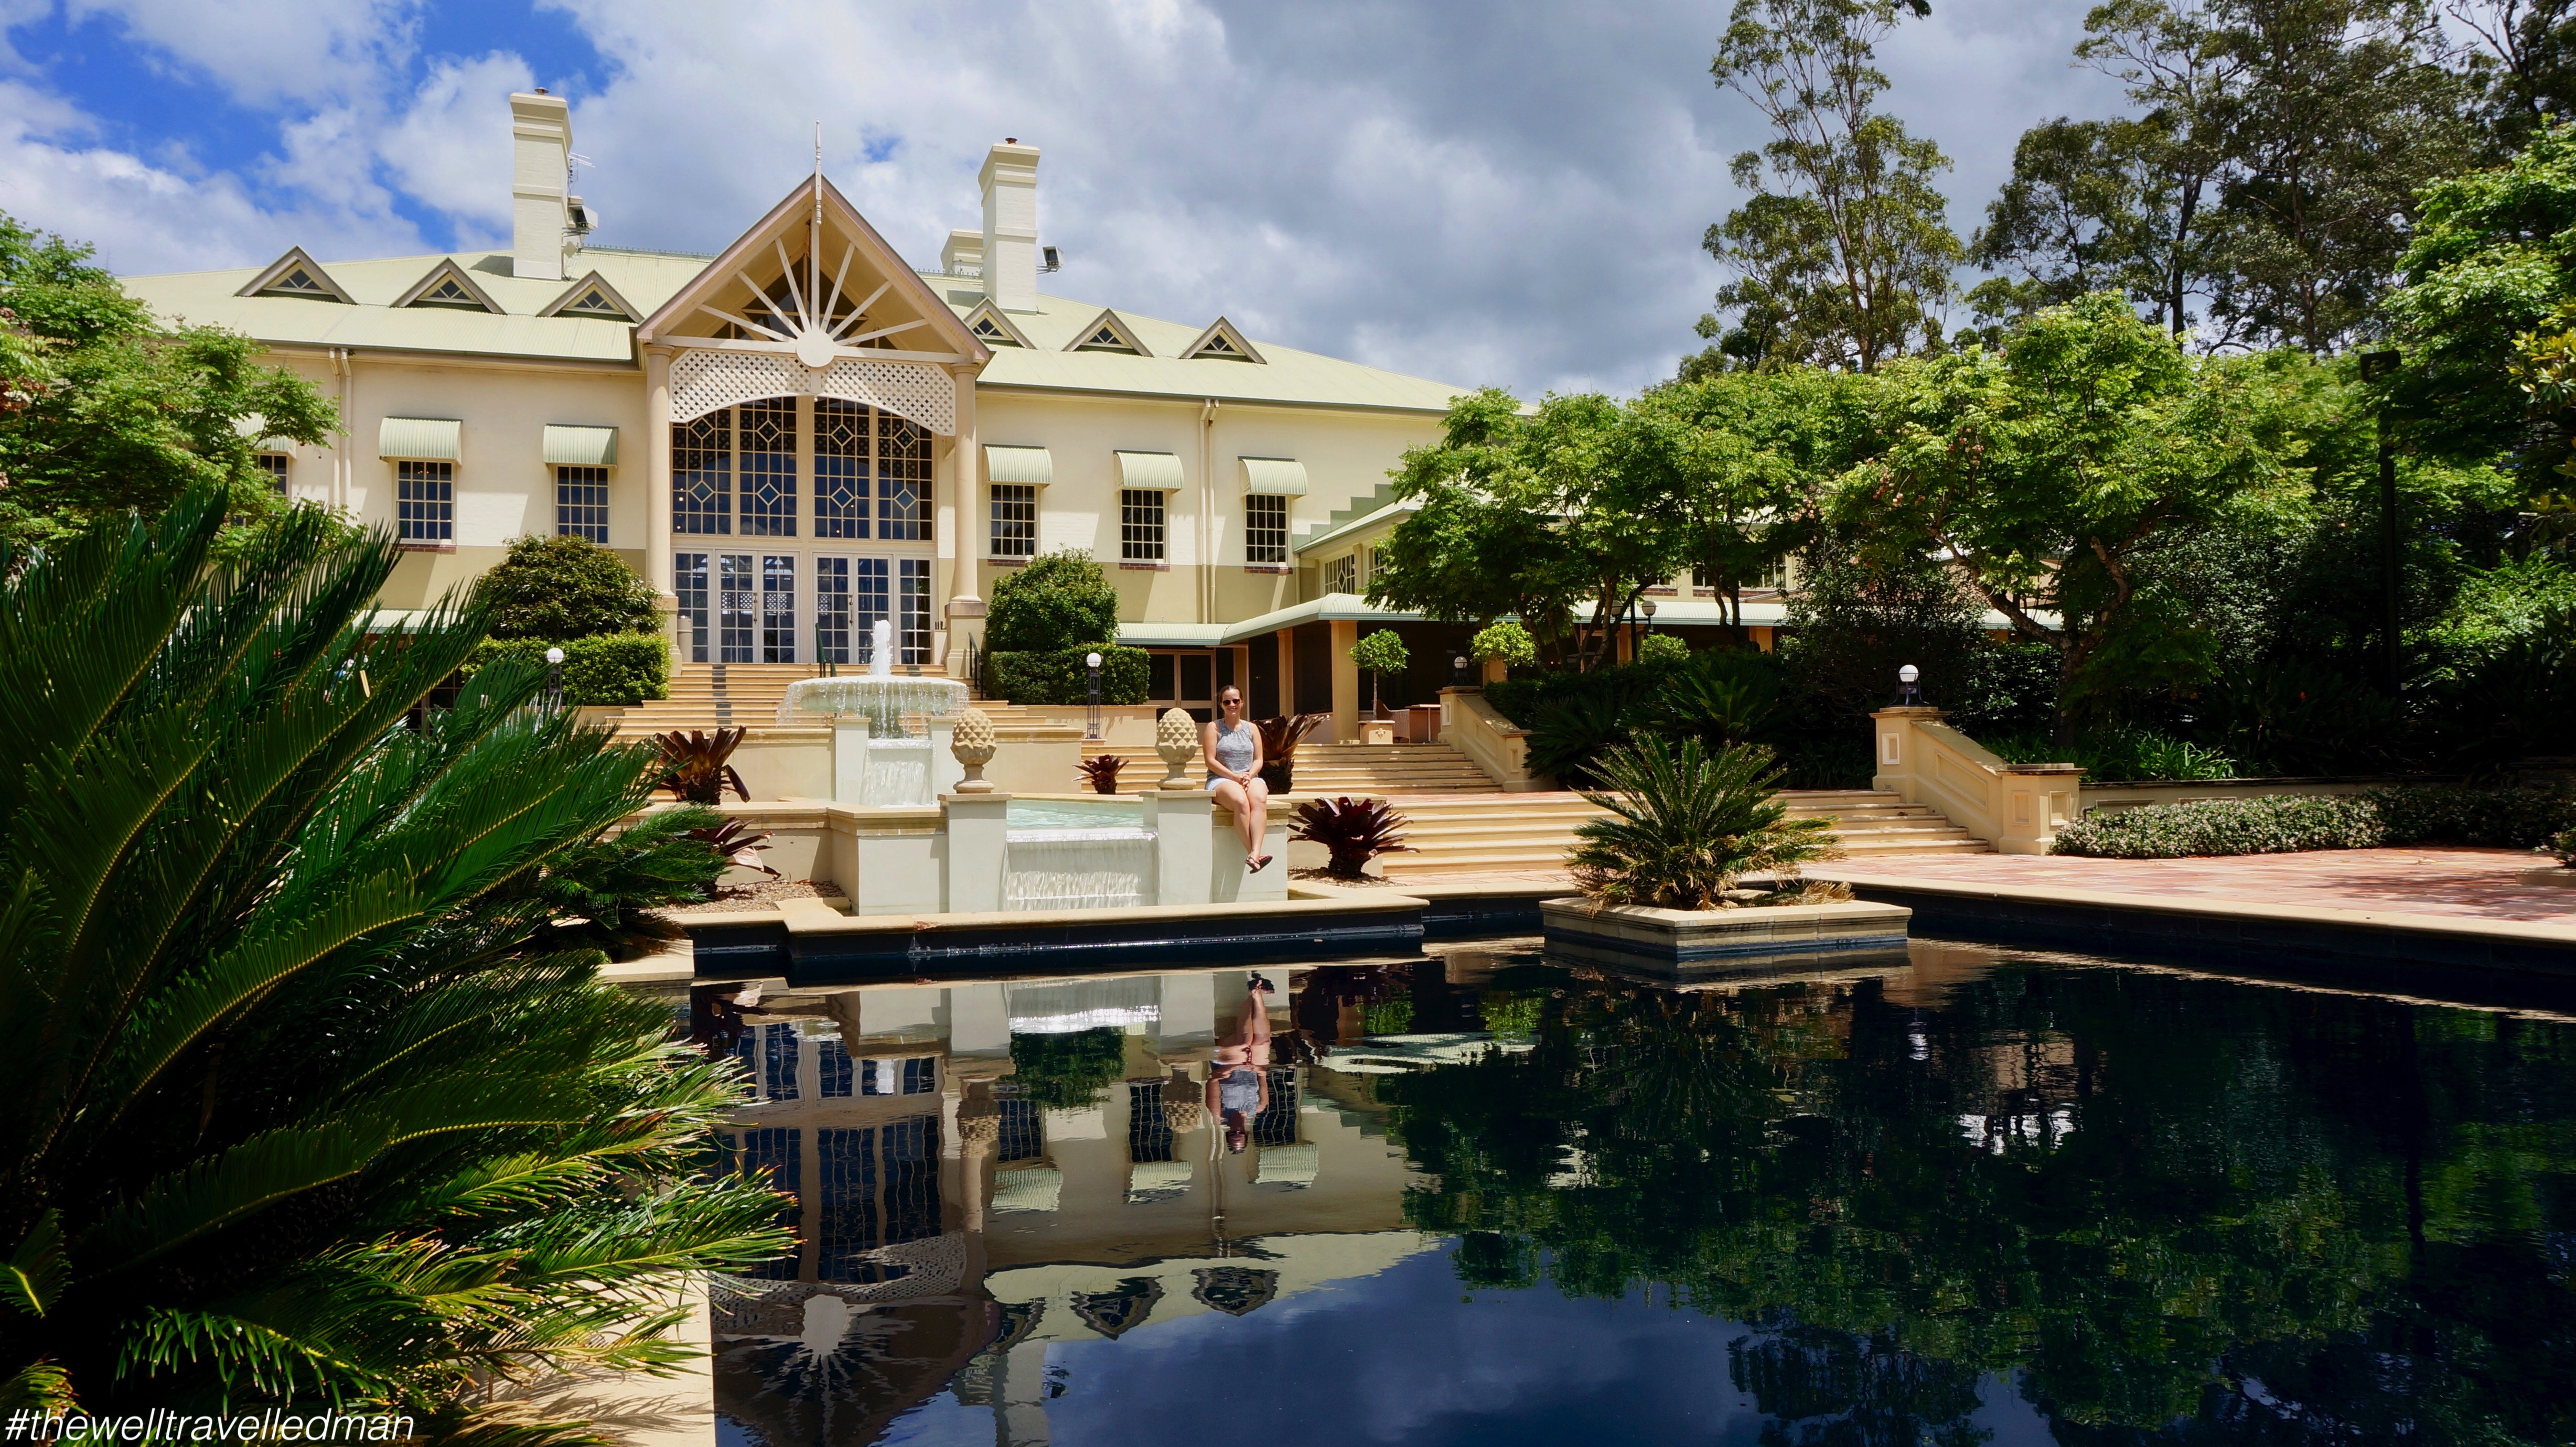 Hotel Review Intercontinental Sanctuary Cove The Well Travelled